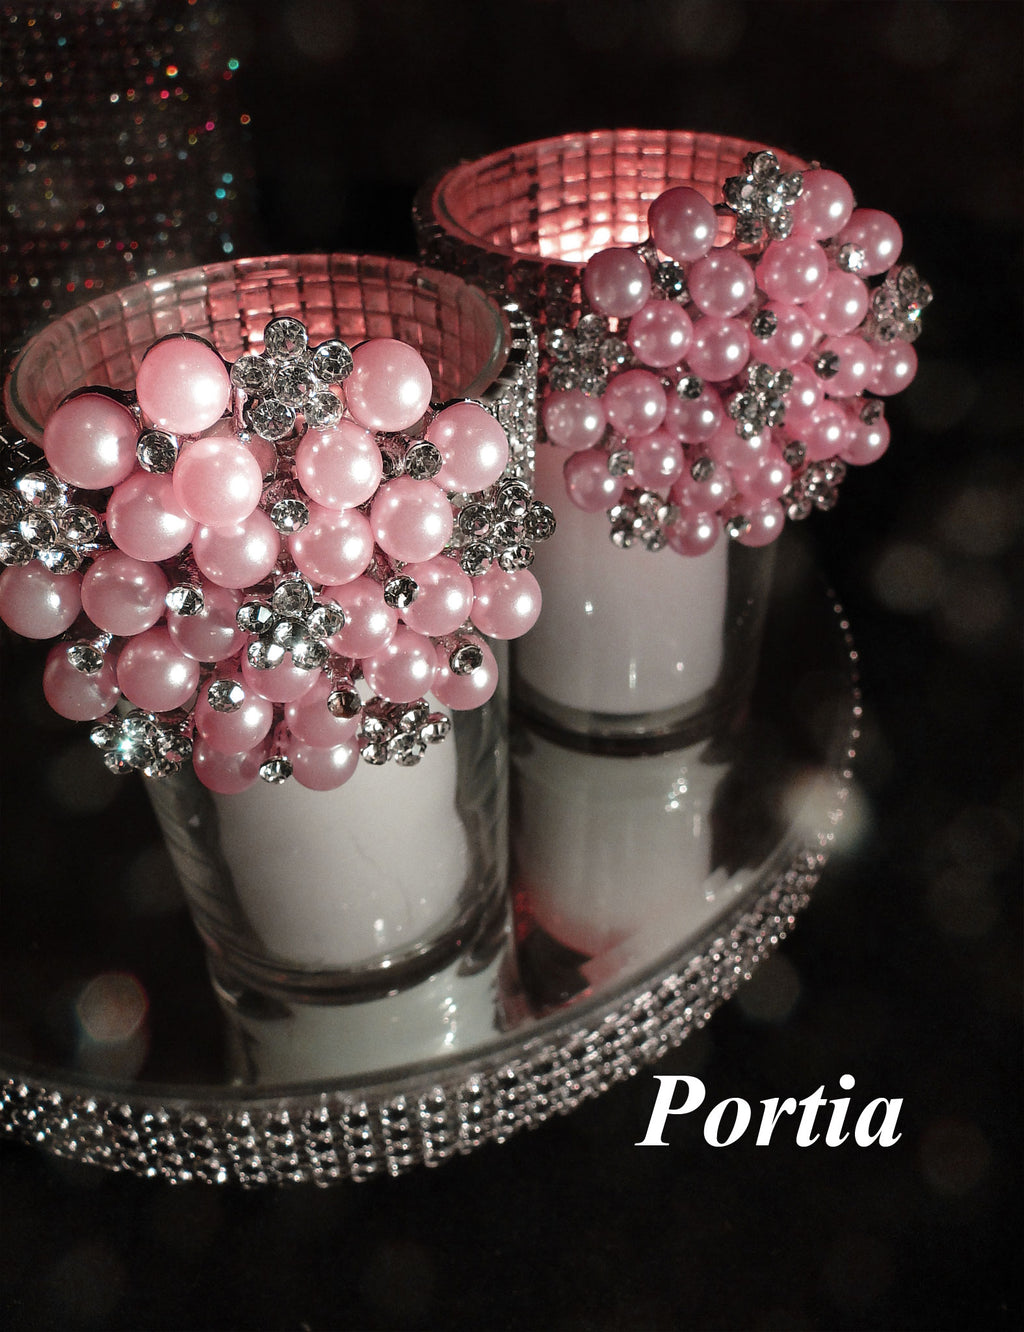 Two votive holders decorated with pink rhinestone brooches.